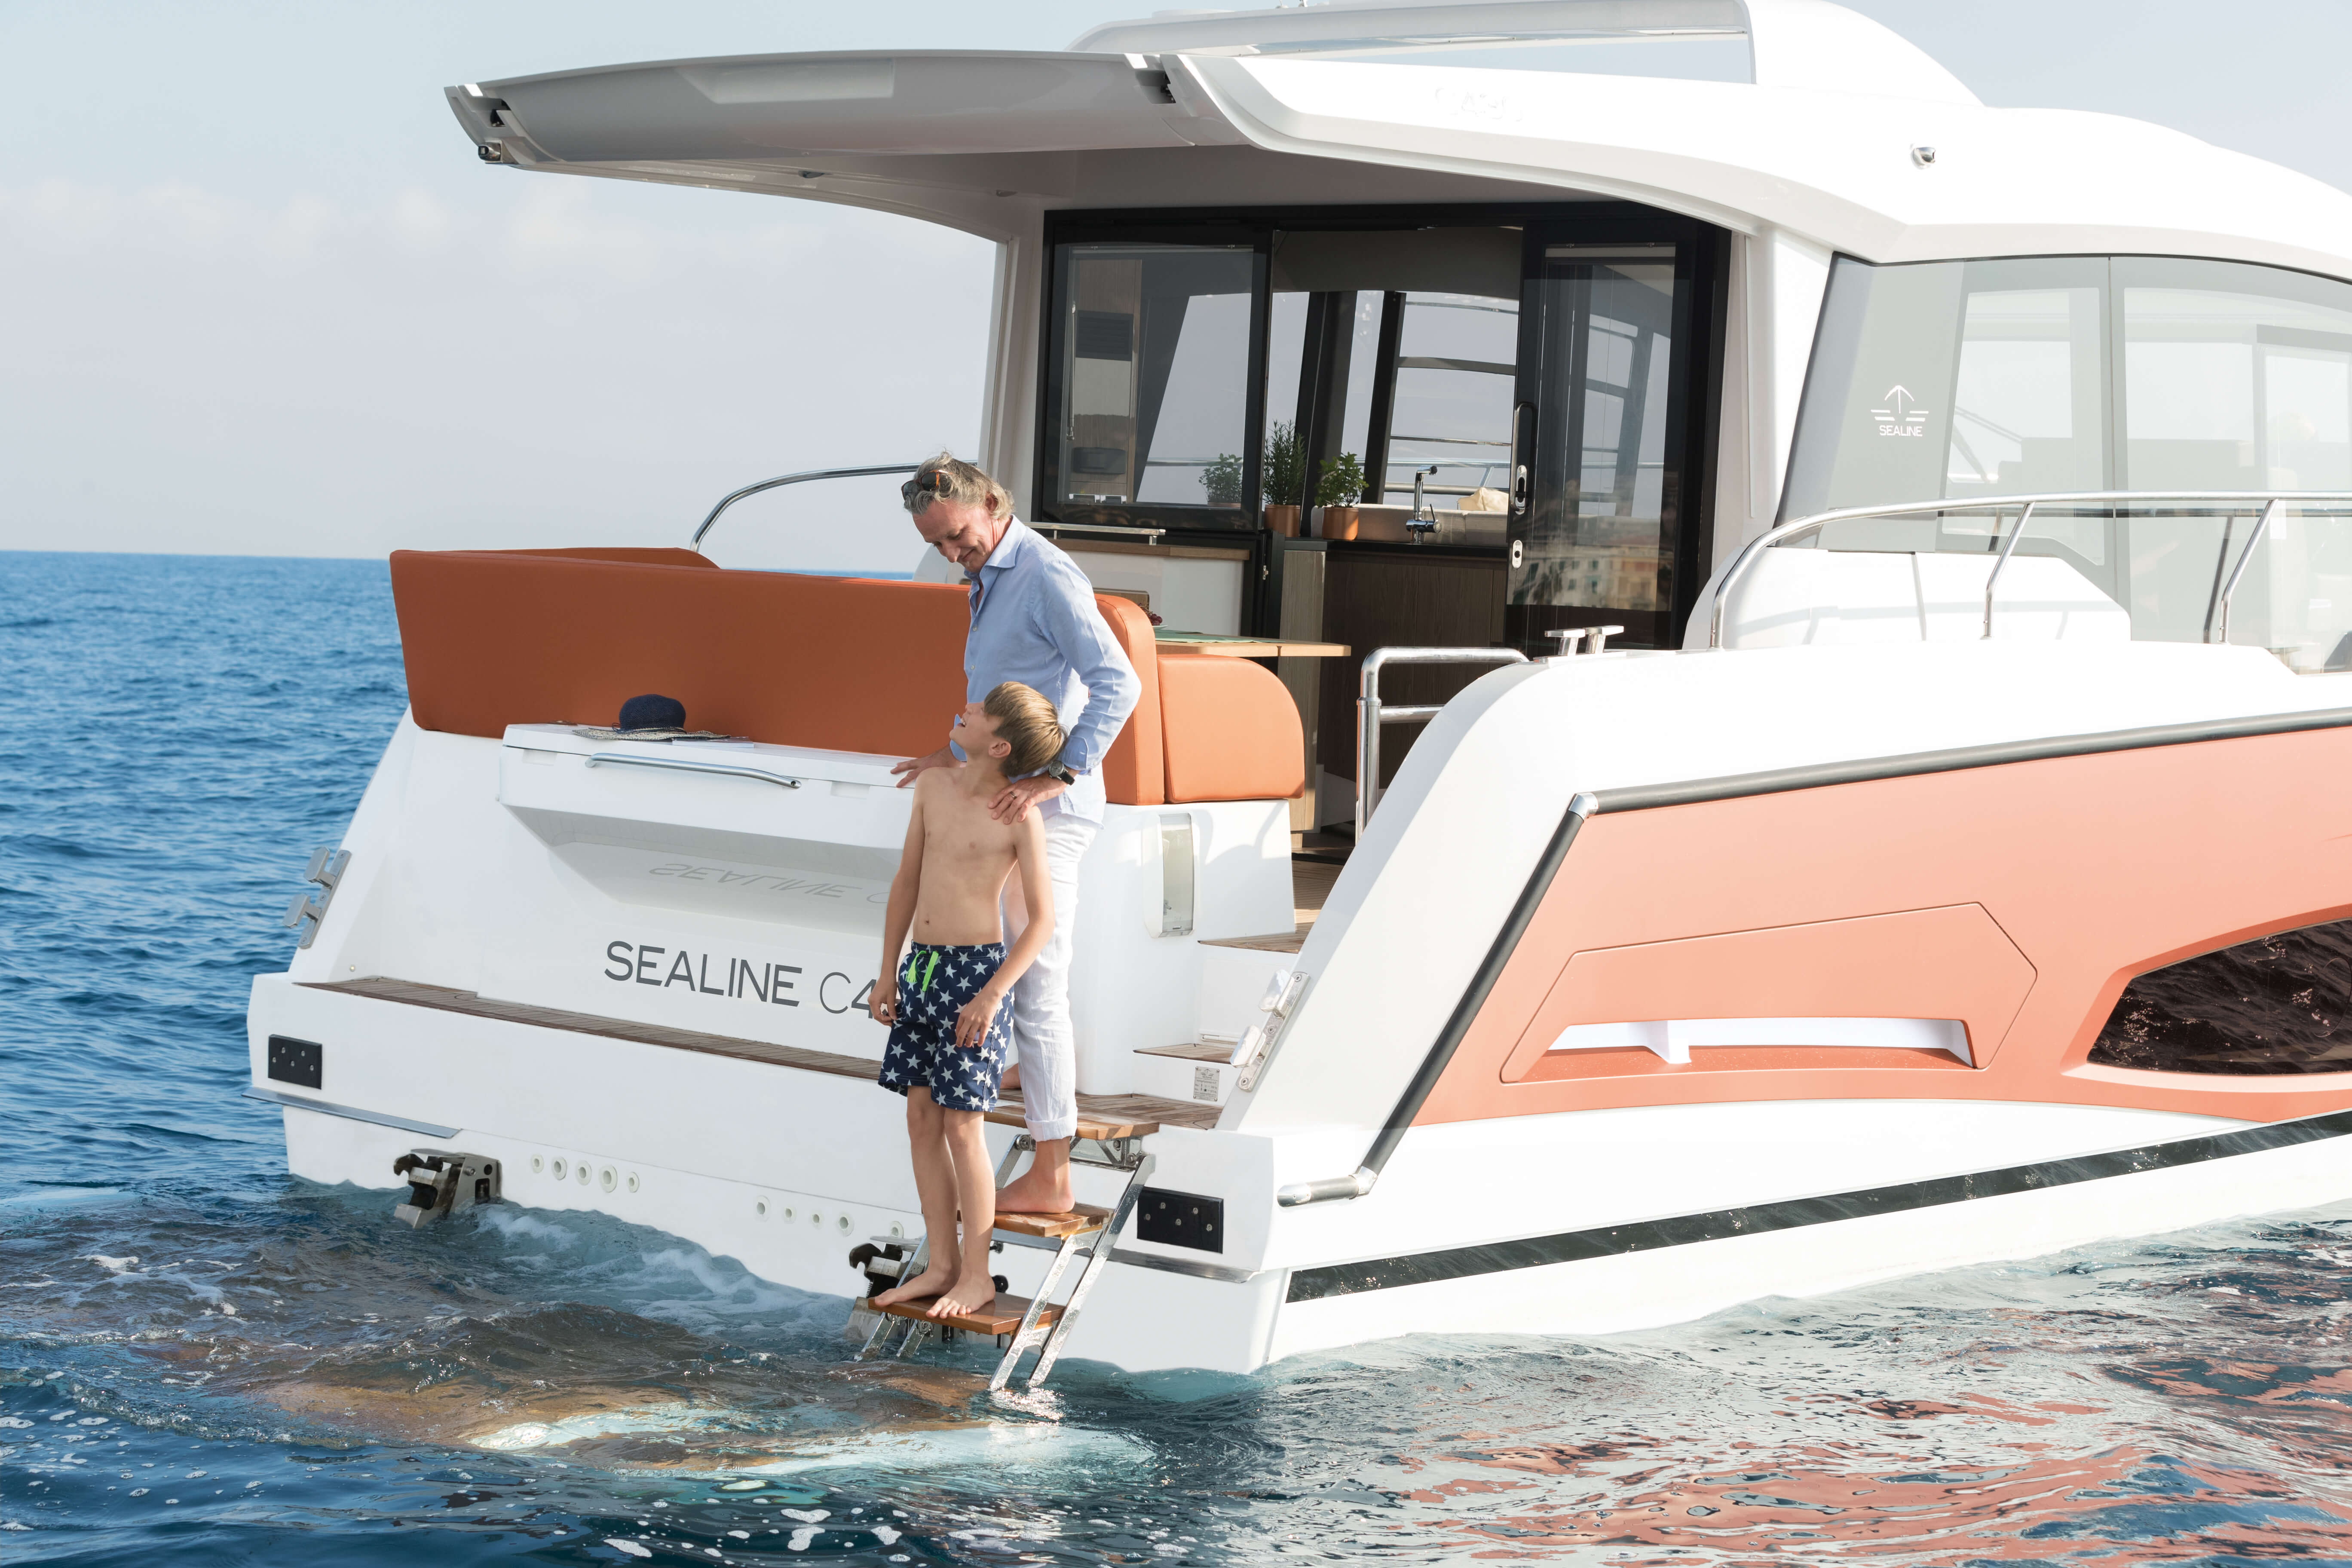 Sealine C430 | Exterior rear view with High/Low movable bathing platform with retractable ladder | Sealine